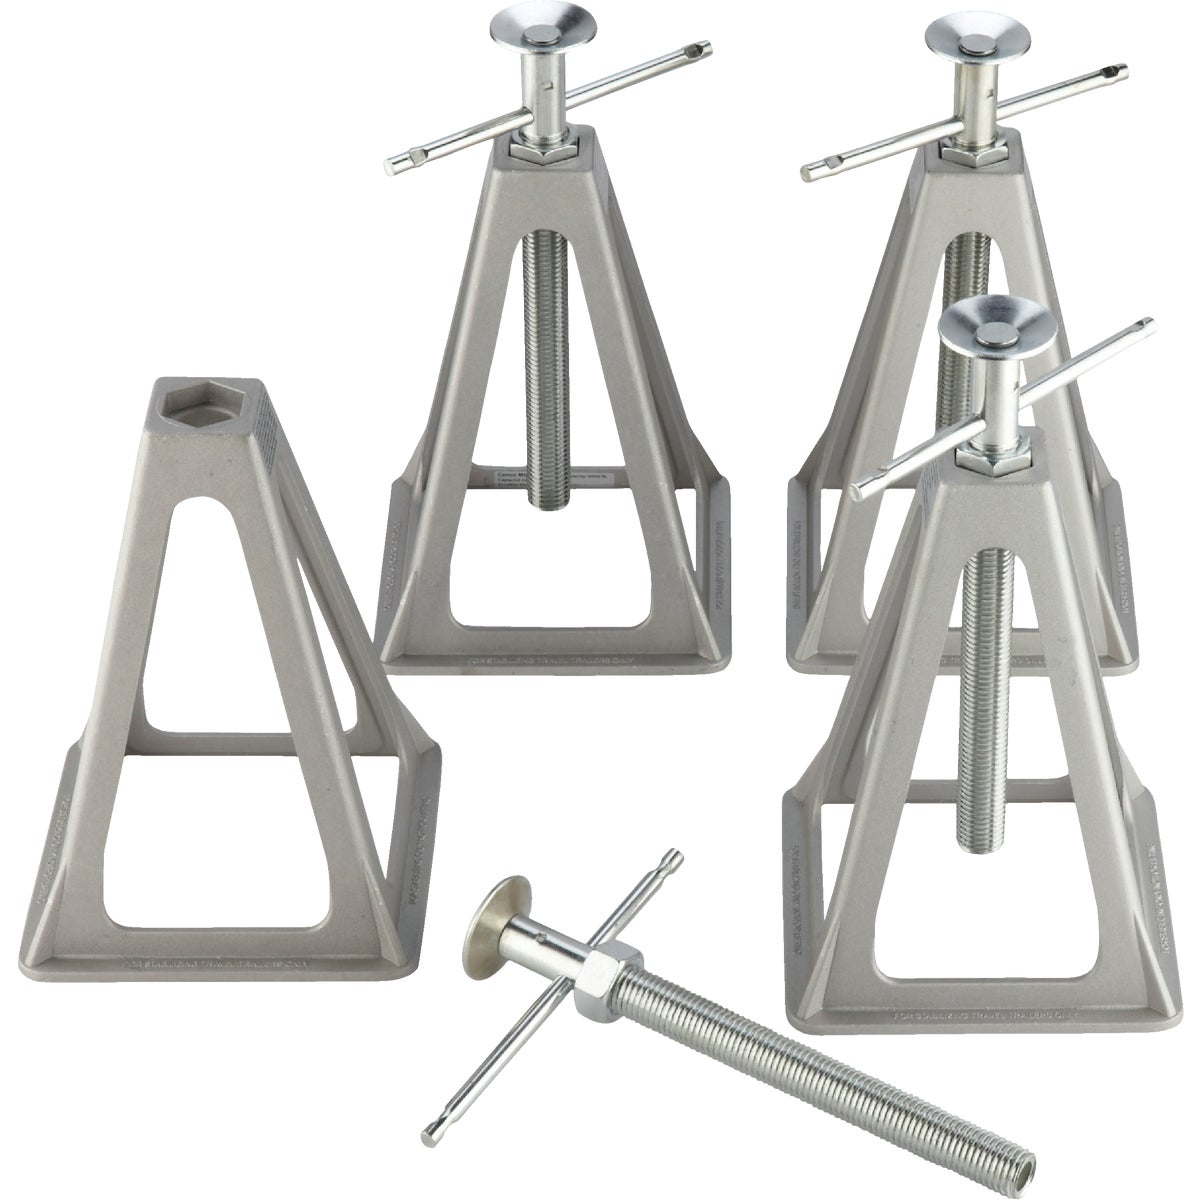 4 PK ALUMINUM JACK STAND - 44560 by Camco Mfg.